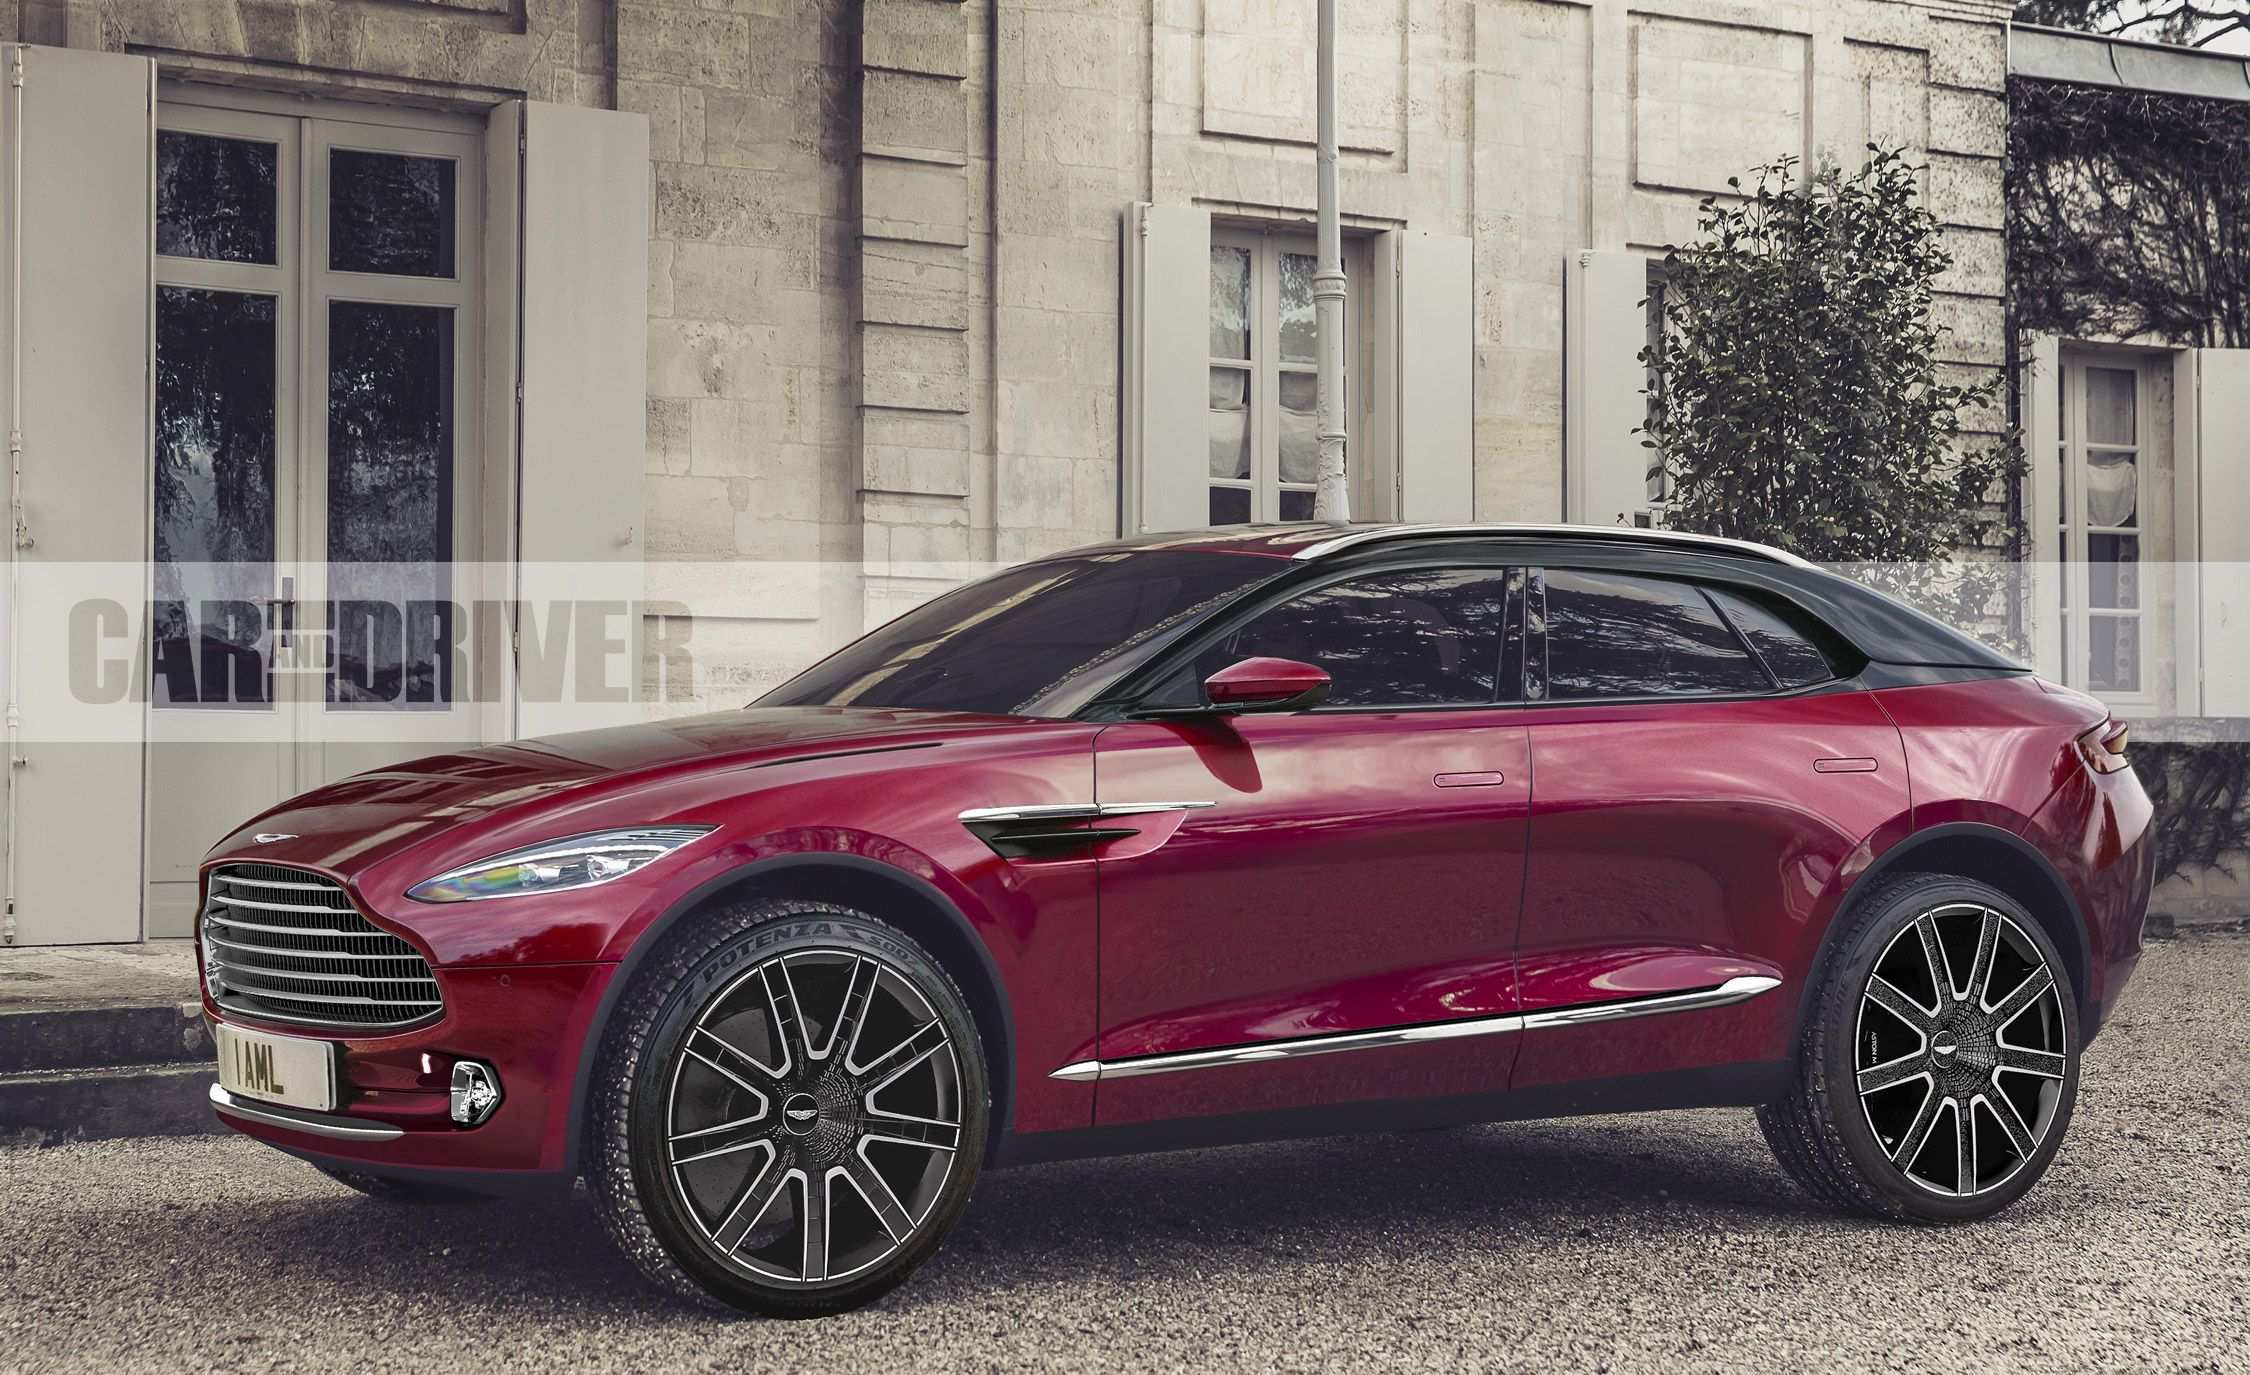 28 Concept of 2020 Aston Martin Dbx Release Date for 2020 Aston Martin Dbx